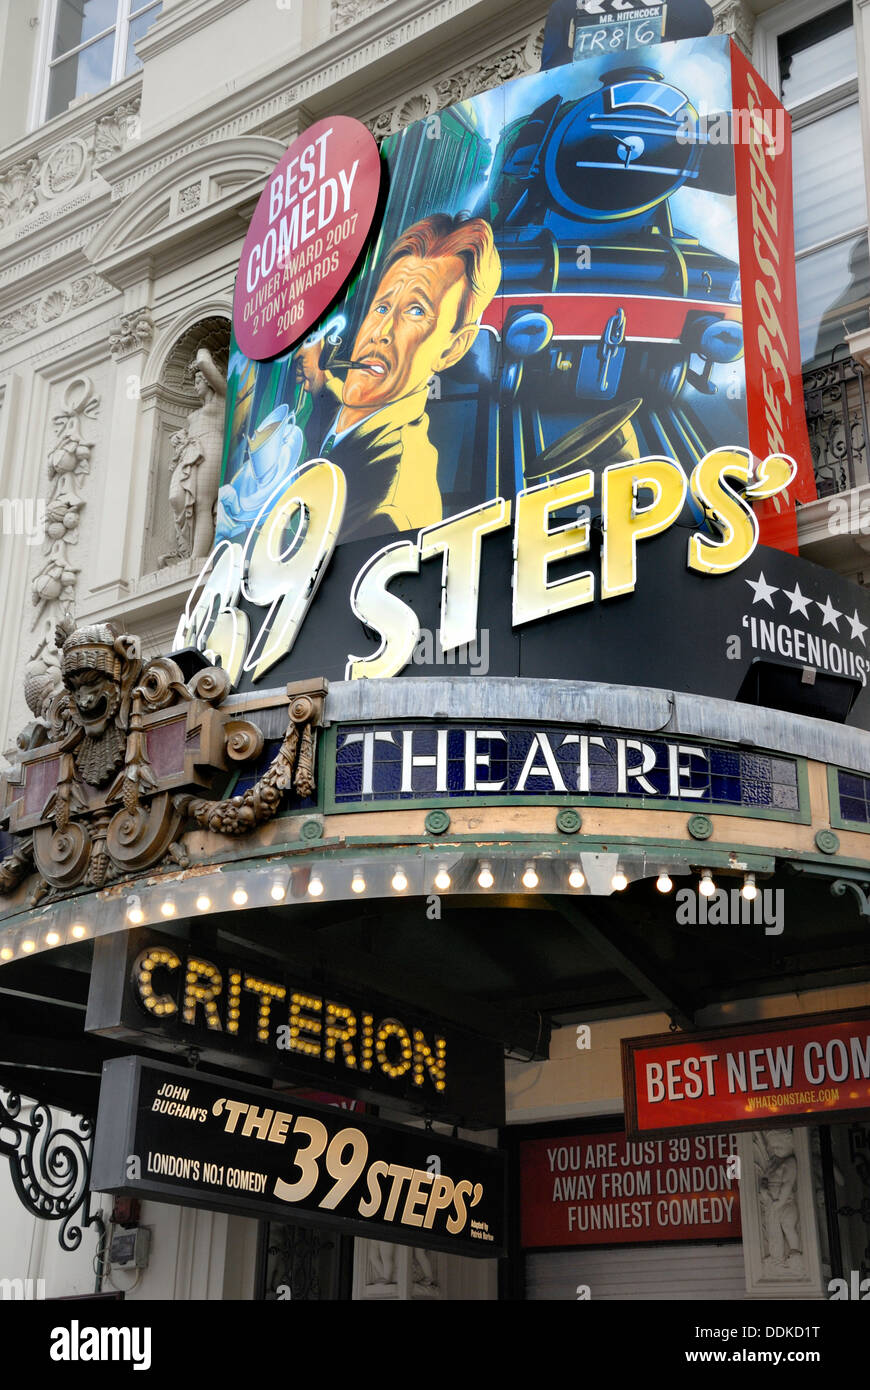 London, England, UK. Criterion Theatre in Piccadilly Circus - The 39 Steps, (2013) - Stock Image